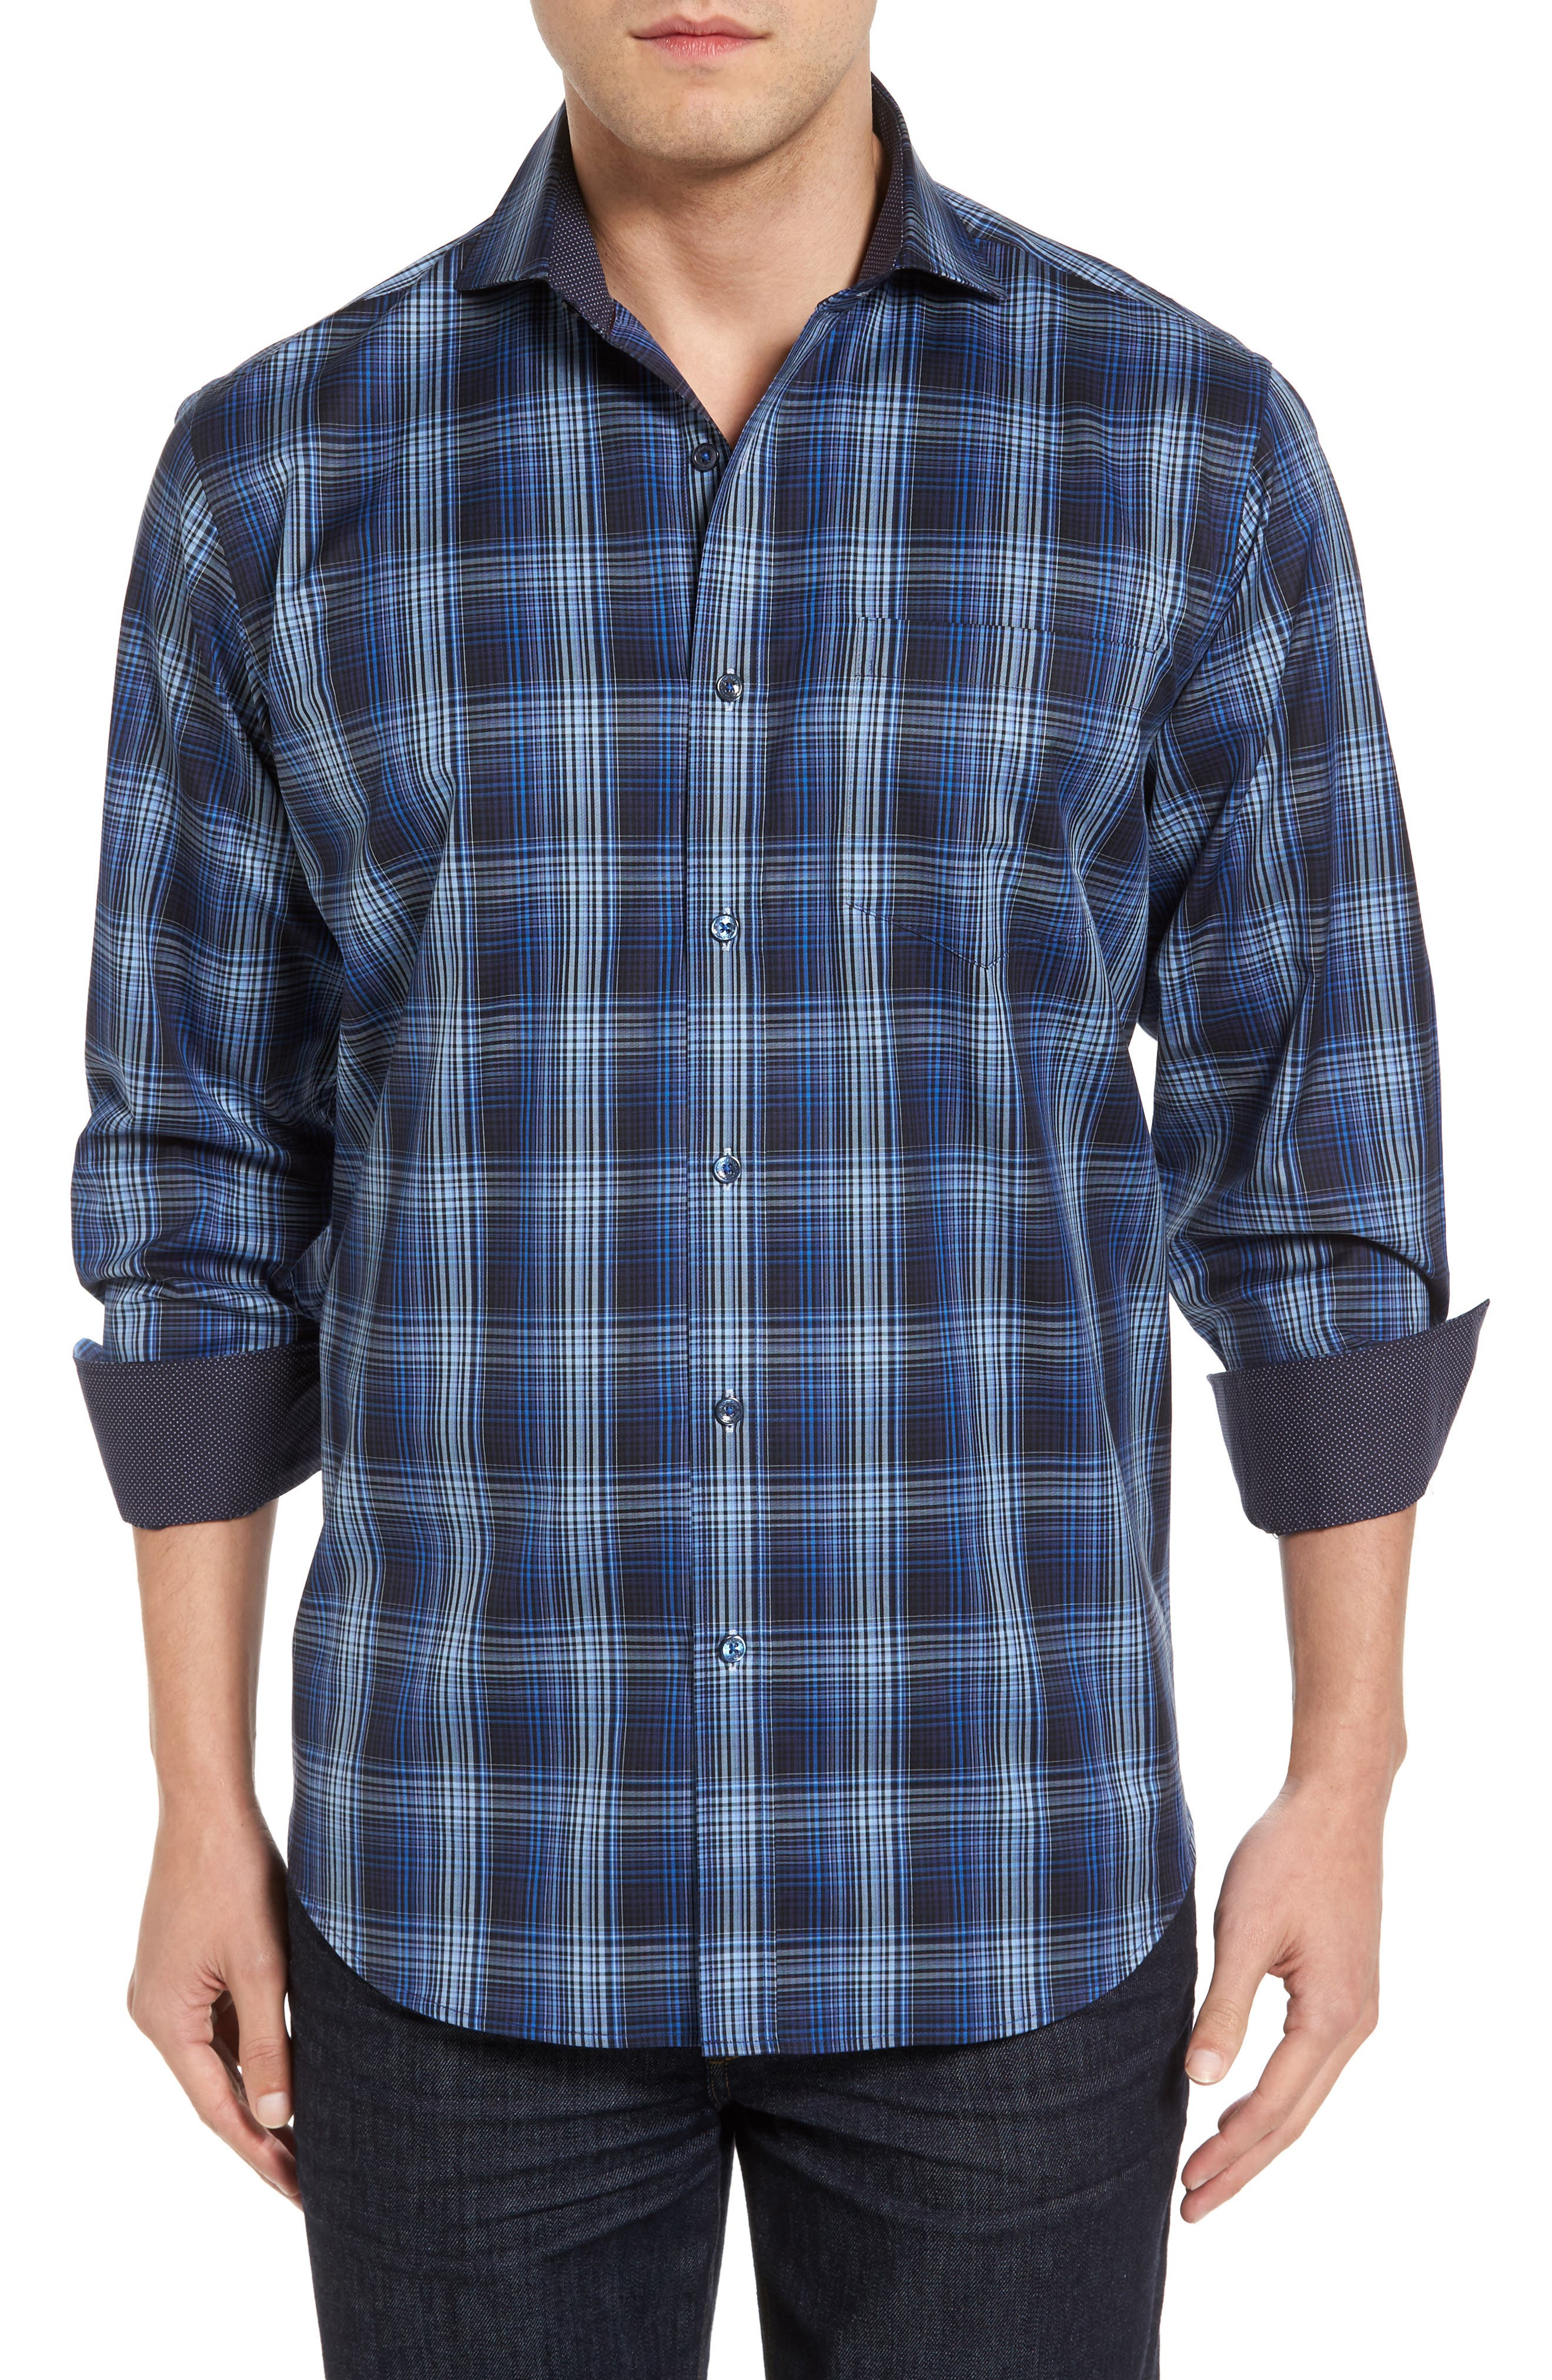 Alternate Image 1 Selected - Bugatchi Classic Fit Plaid Sport Shirt